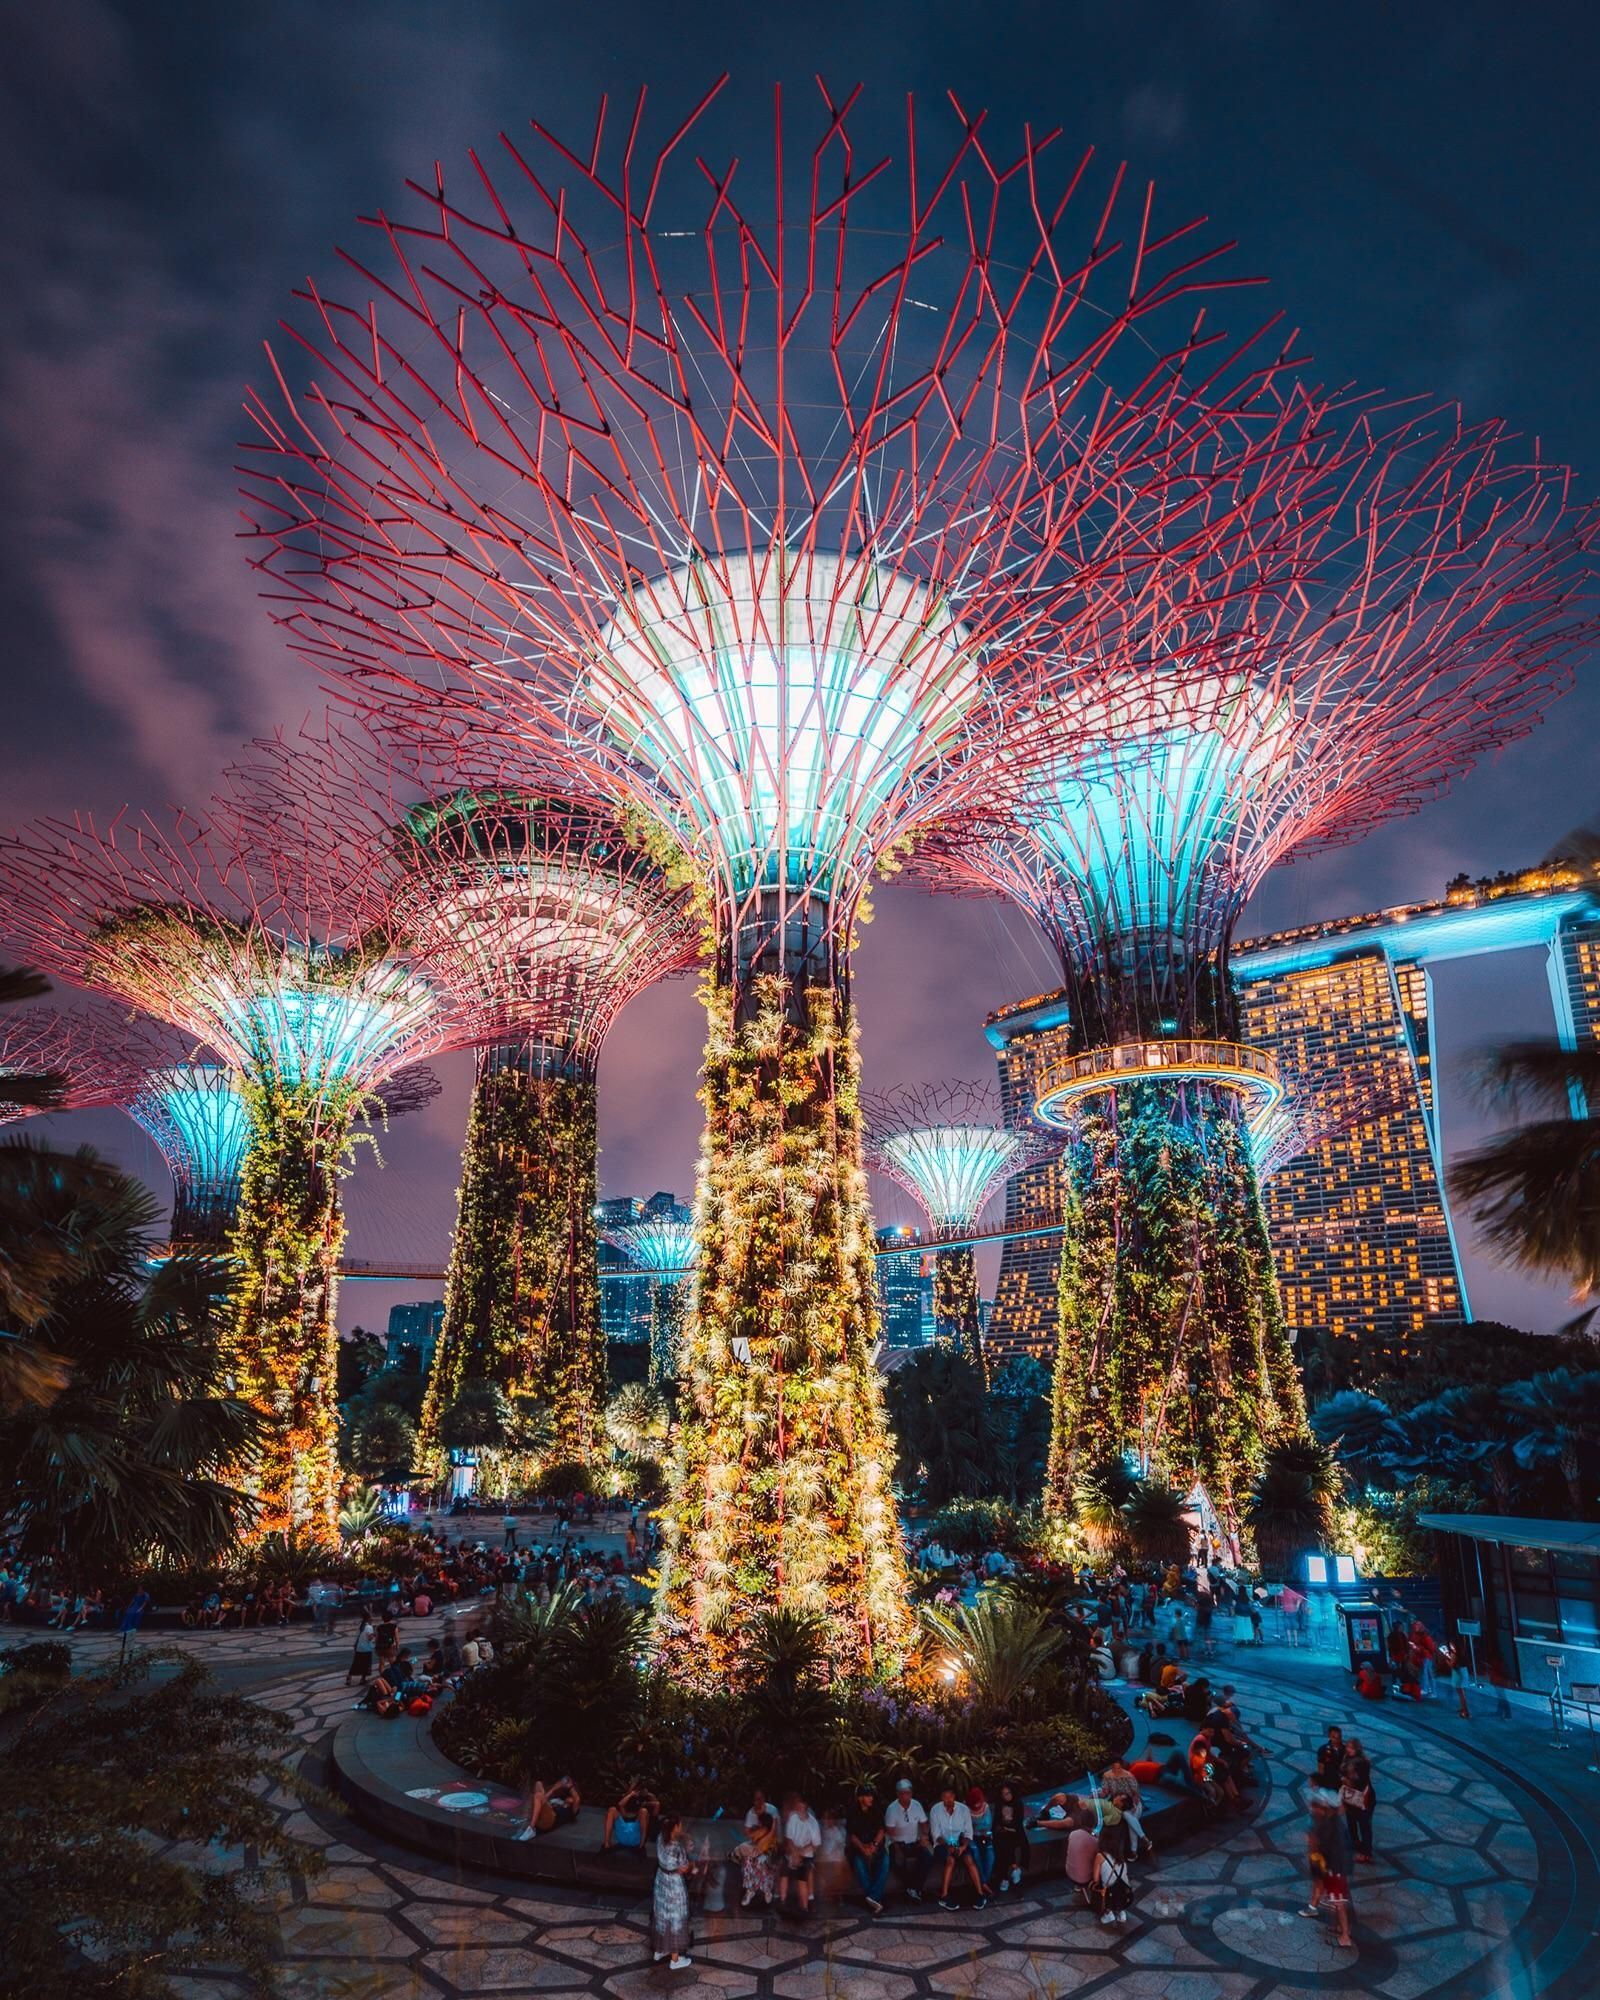 ad22e2676f975f7540188c58de725c12 - Gardens By The Bay East Singapore